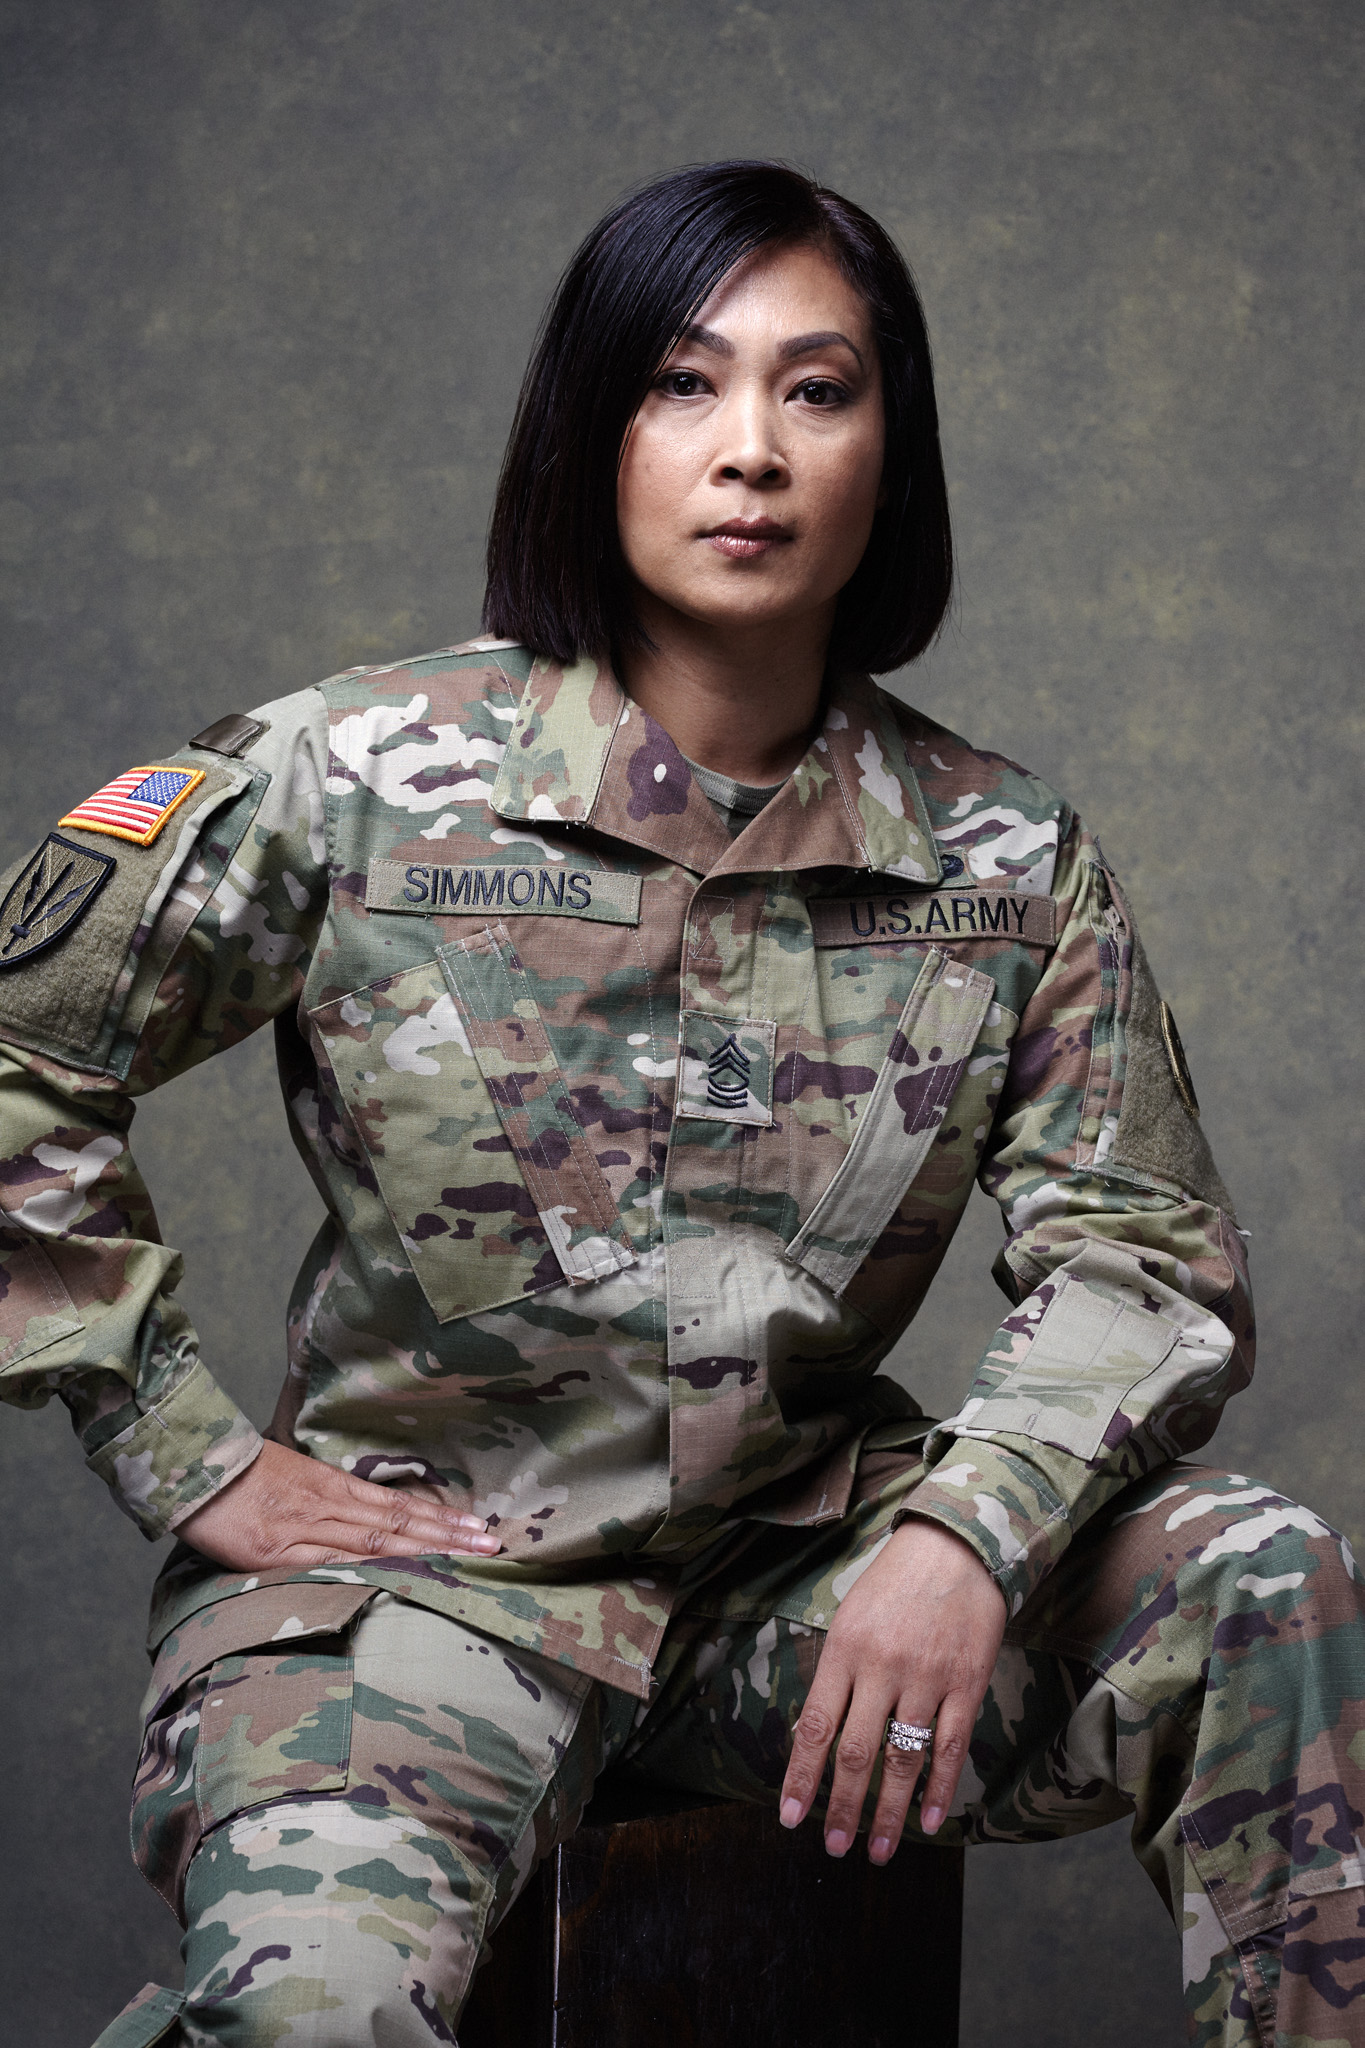 Jenn-McIntyre-Military-Women-Simmons.jpg